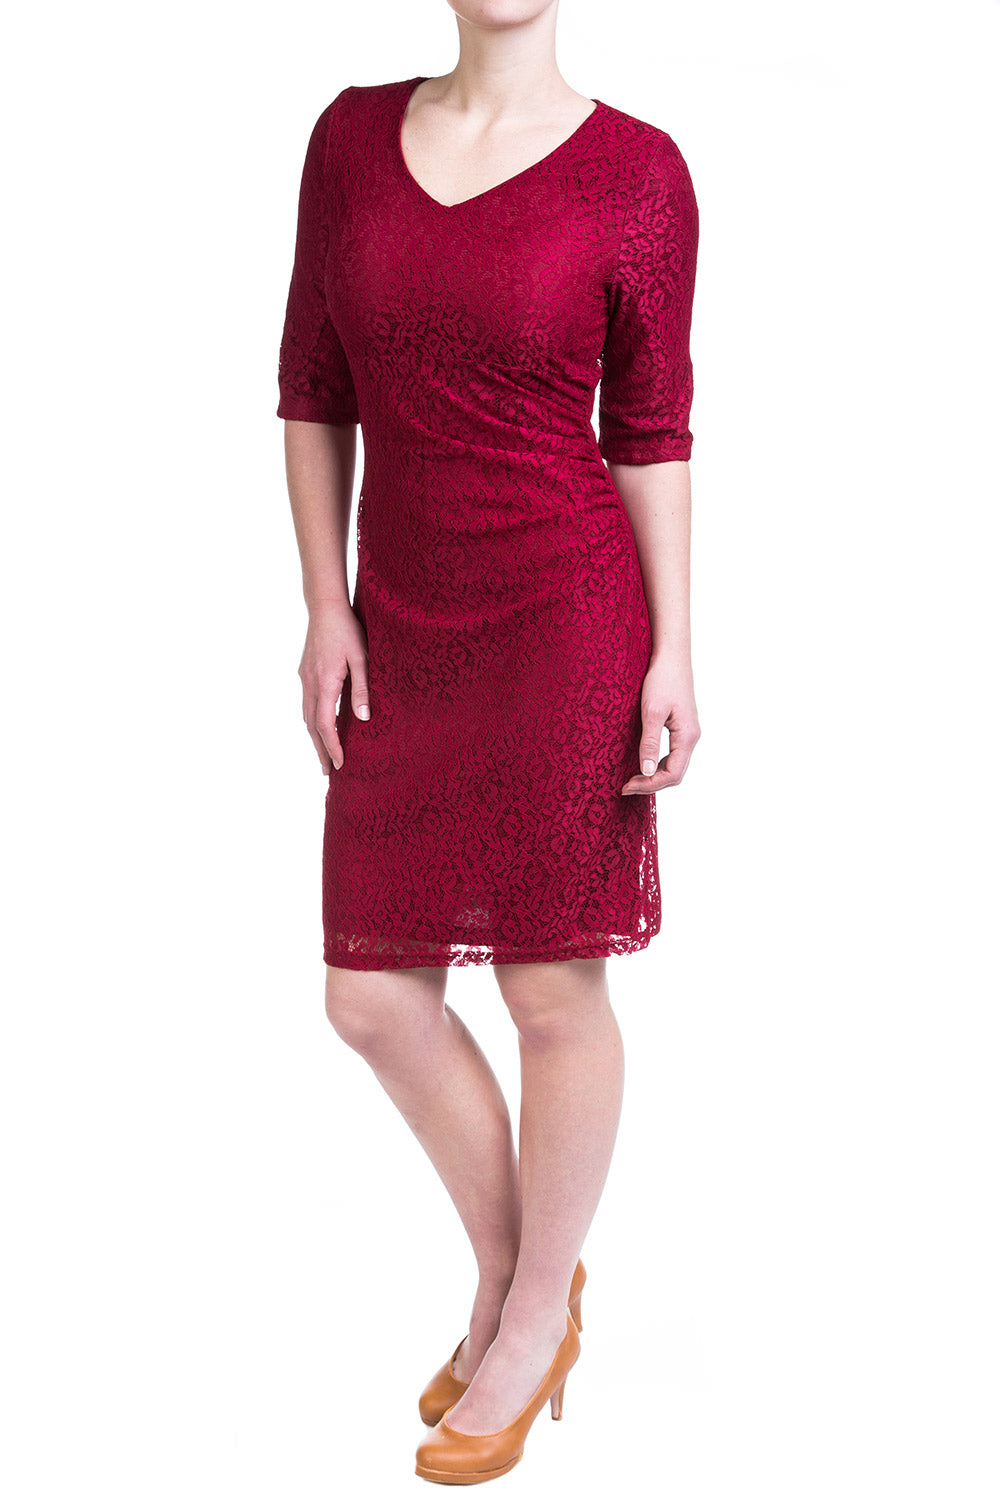 Type 3 Red Rover Dress